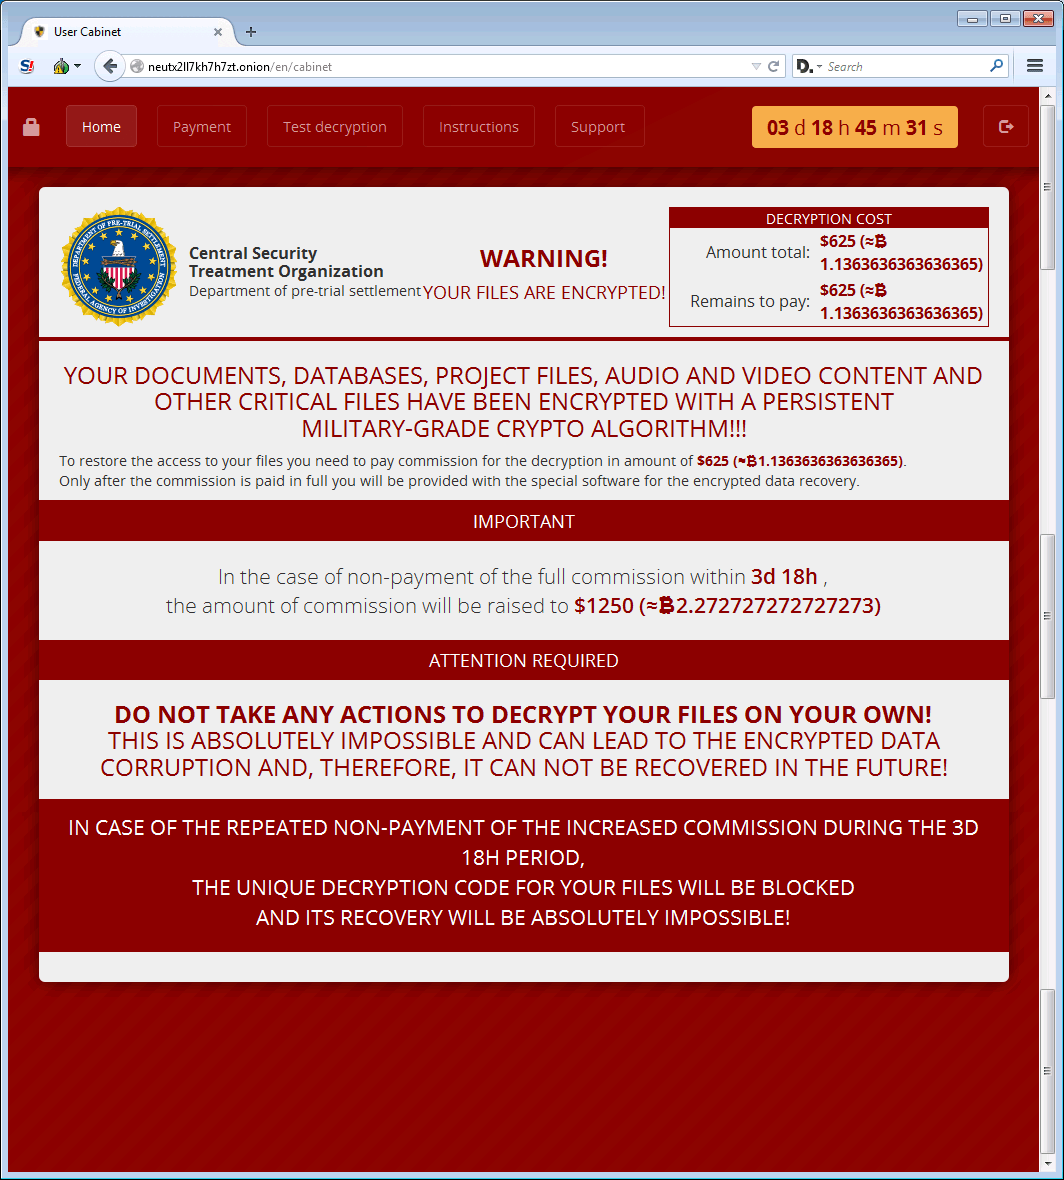 Fak Central Security Treatment Organization website for ransom payment (Source: http://www.bleepingcomputer.com/news/security/the-crylocker-ransomware-communicates-using-udp-and-stores-data-on-imgur-com/)